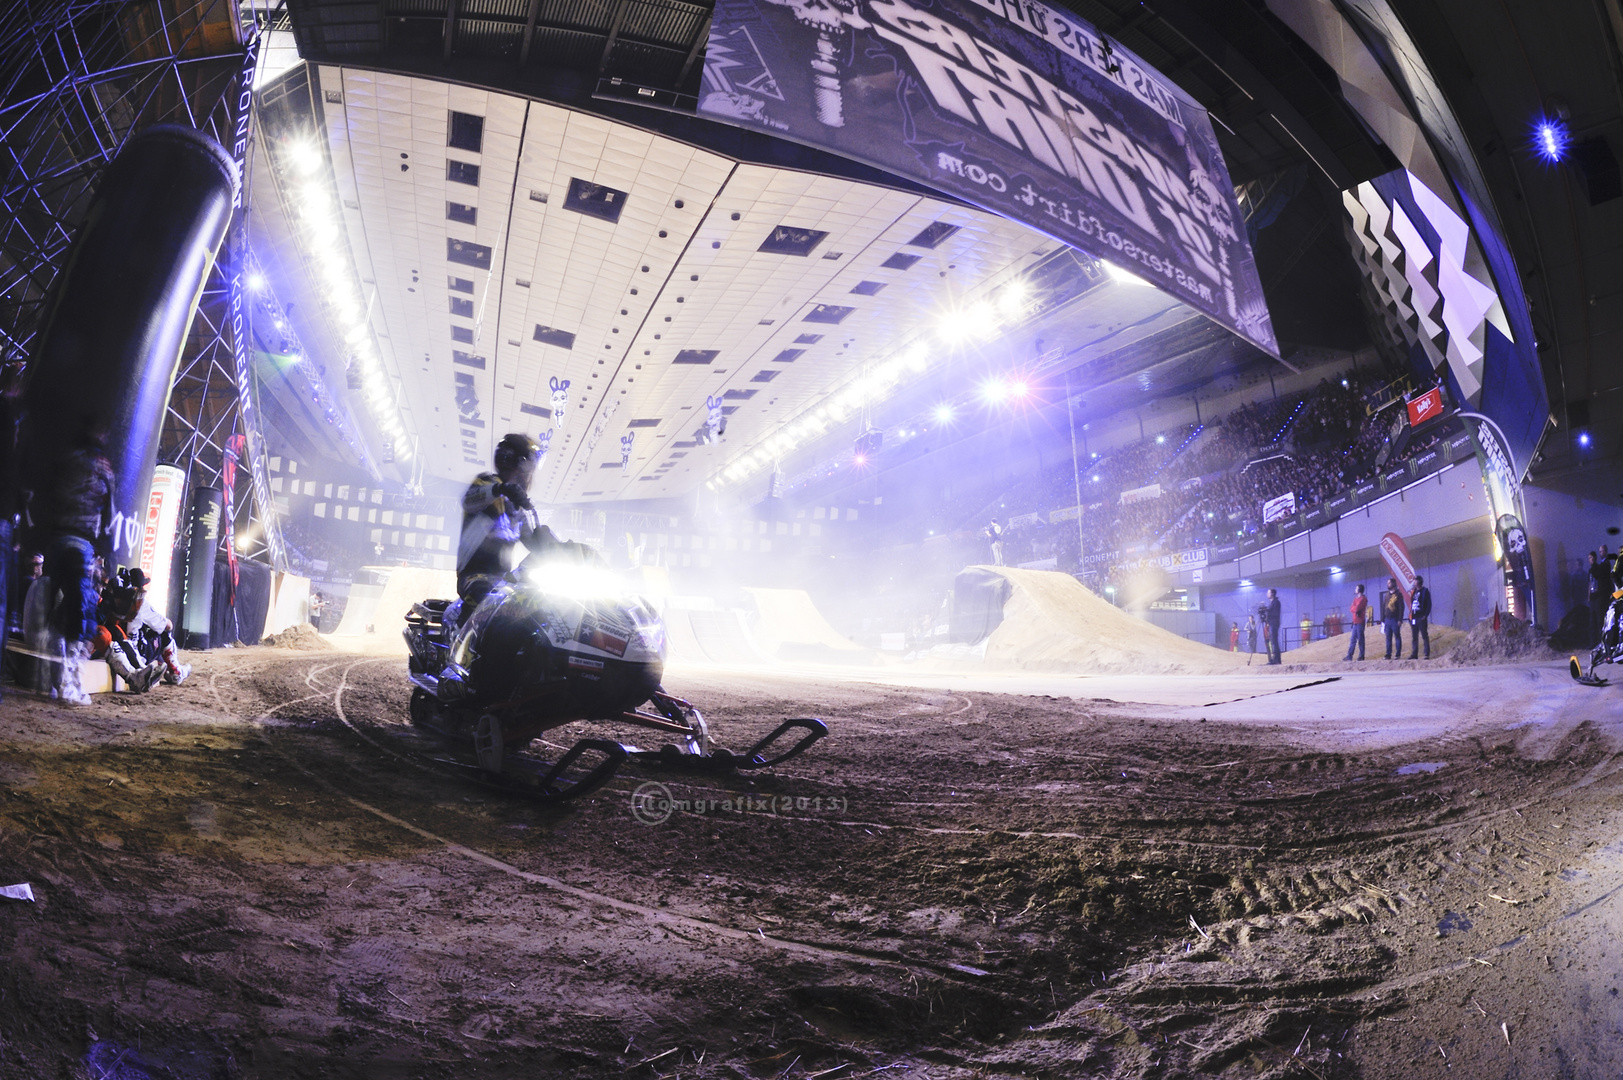 Masters of dirt Arena with Snowmobile